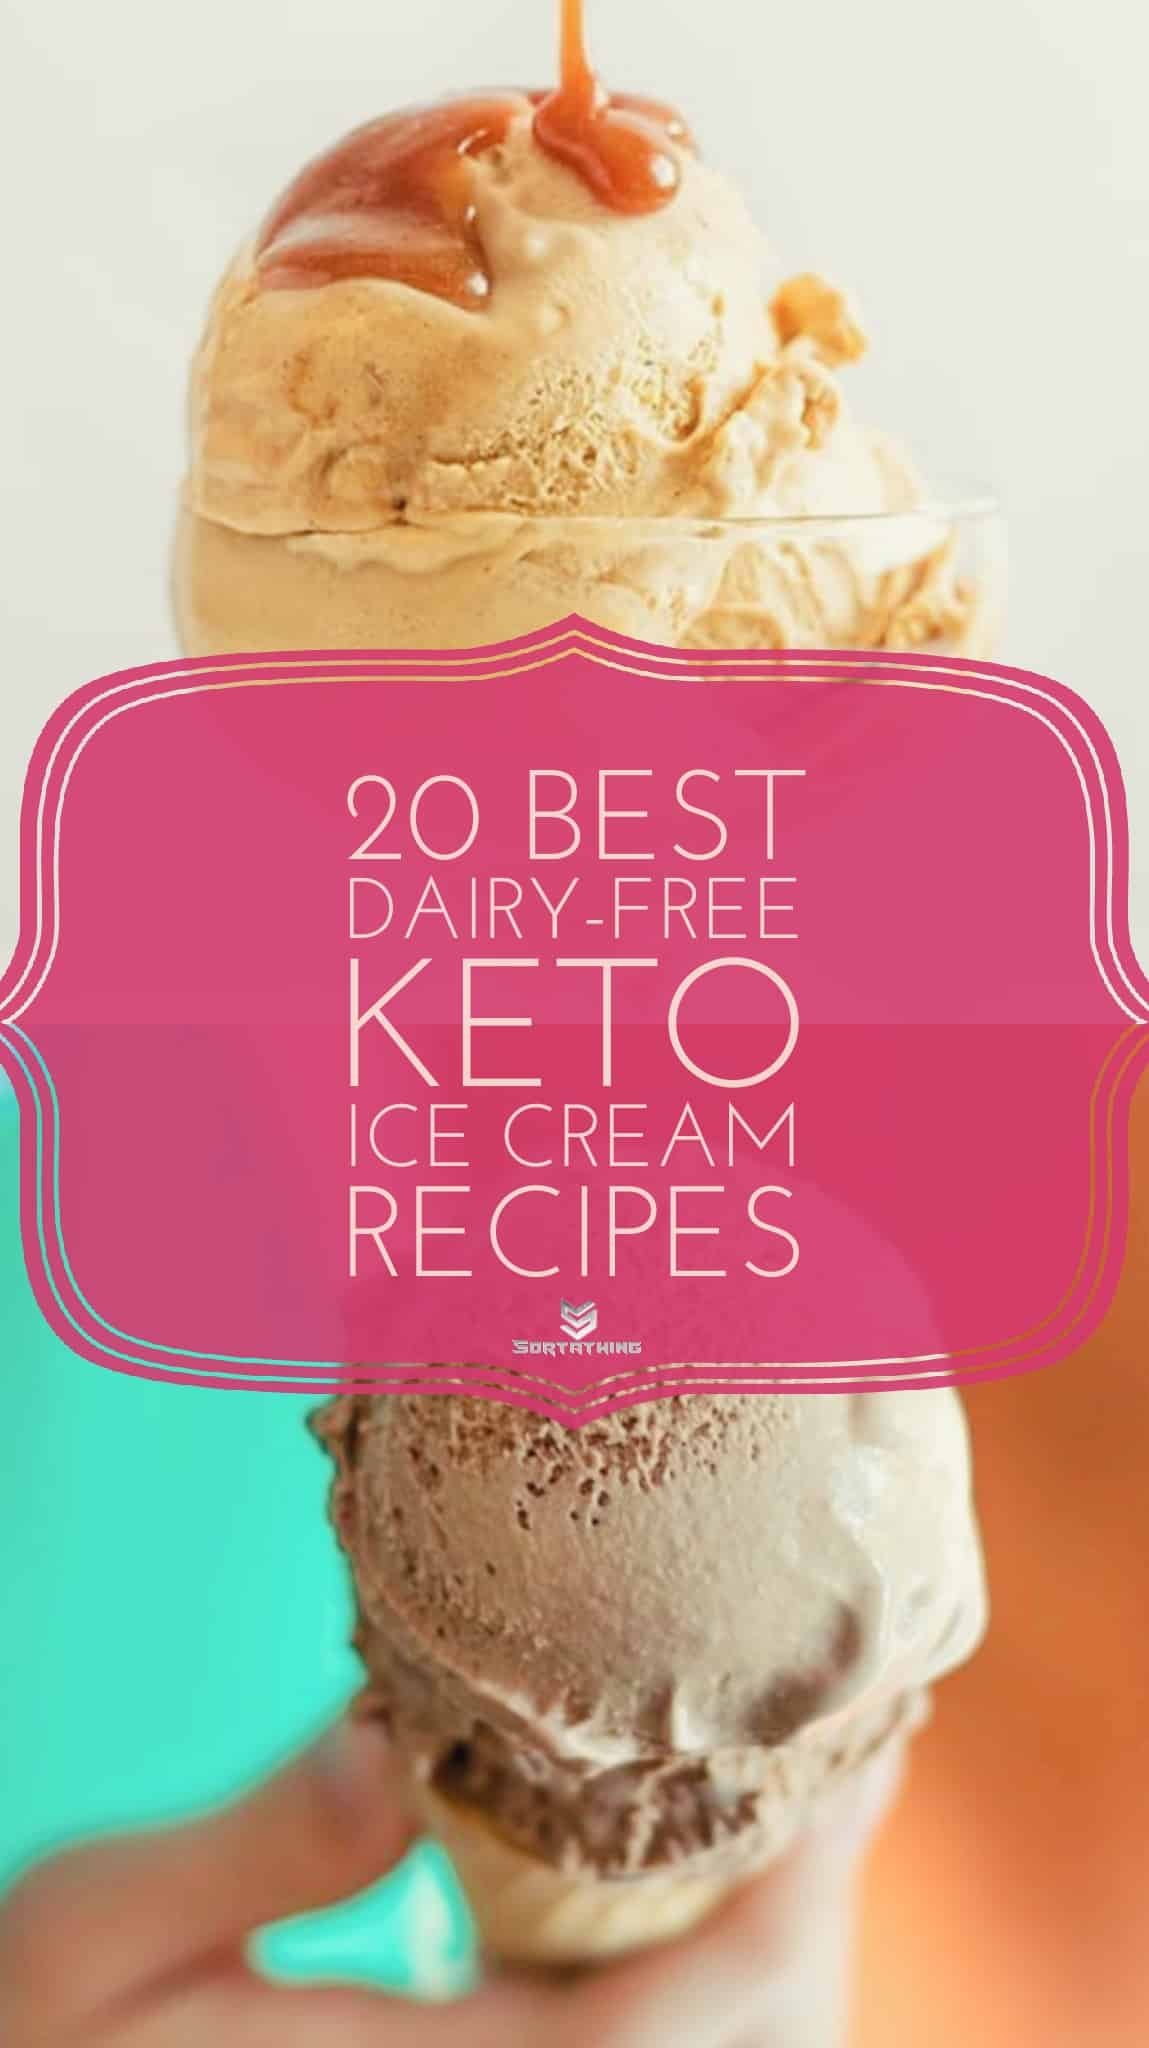 No-Churn Keto Salted Caramel Ice Cream and Dairy-Free No Churn Chocolate Ice Cream